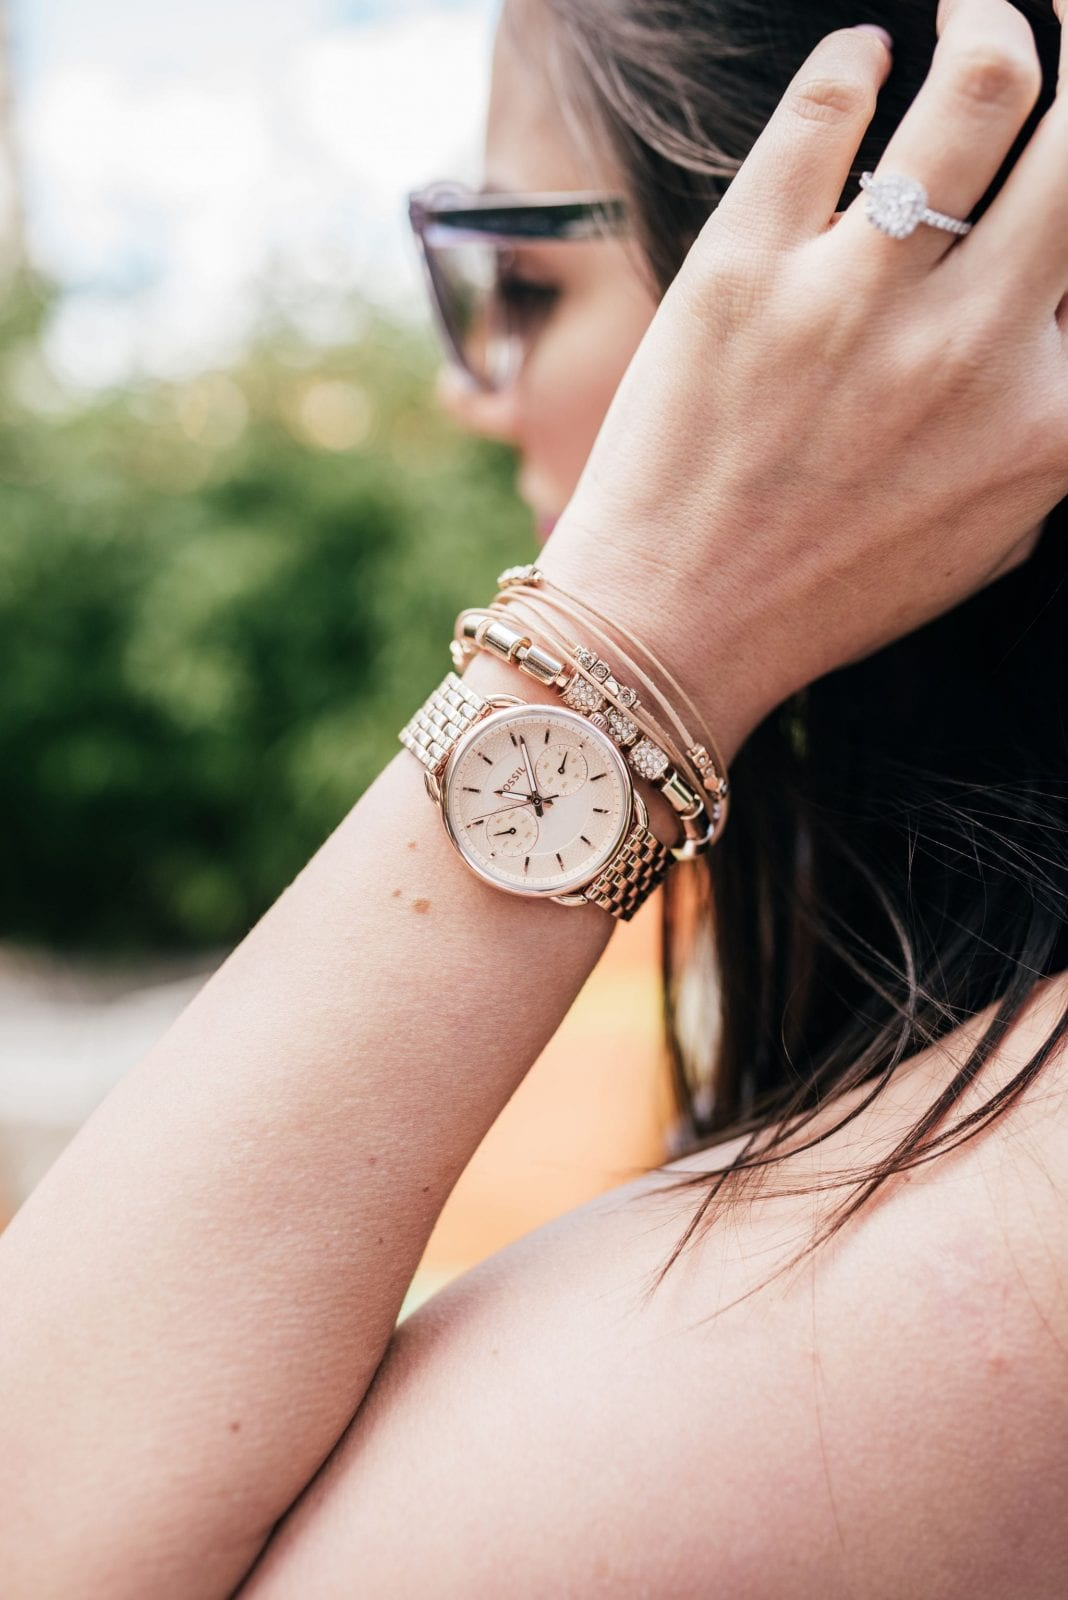 This is a close up of my Fossil watch and Fossil bracelets.